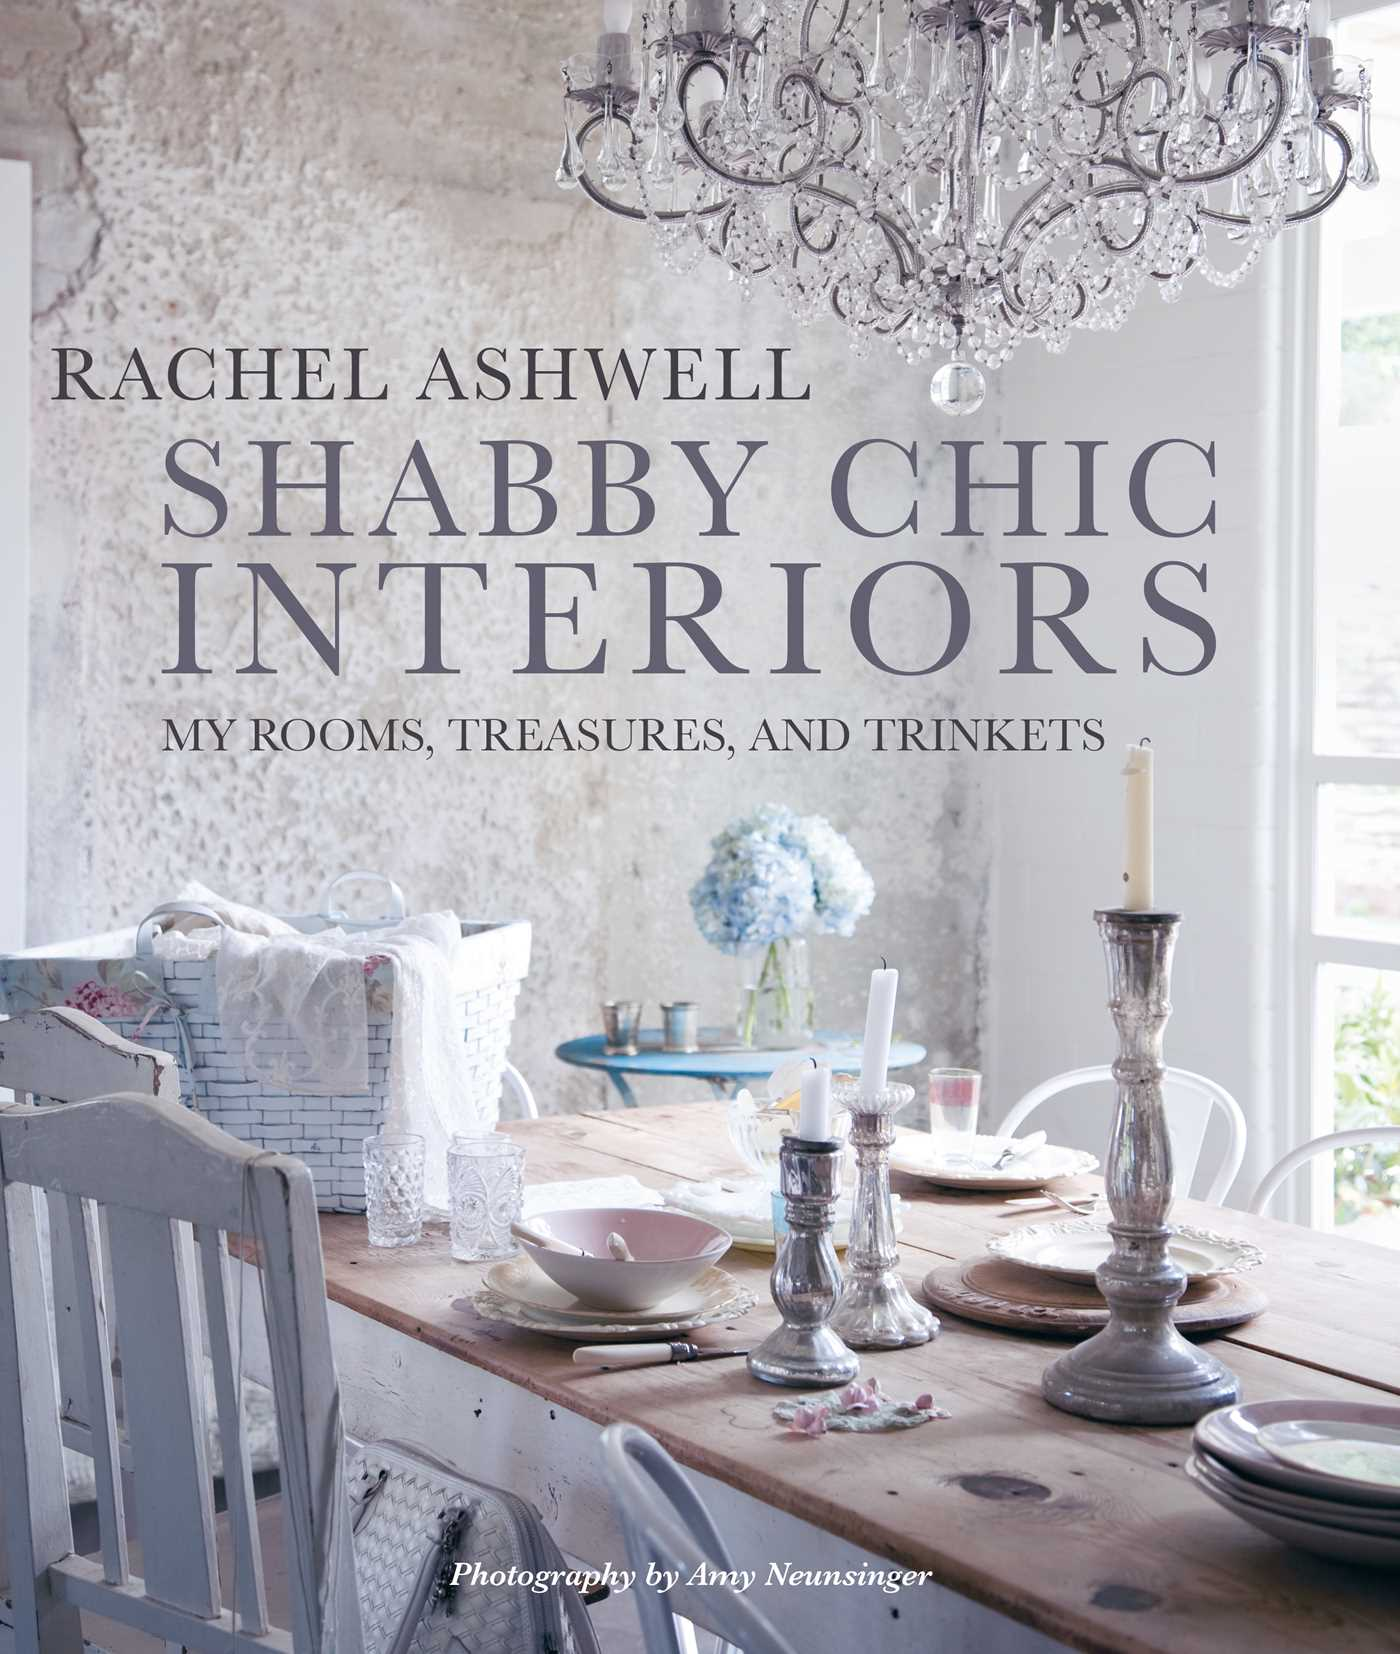 Shabby Chic Interiors Book by Rachel Ashwell